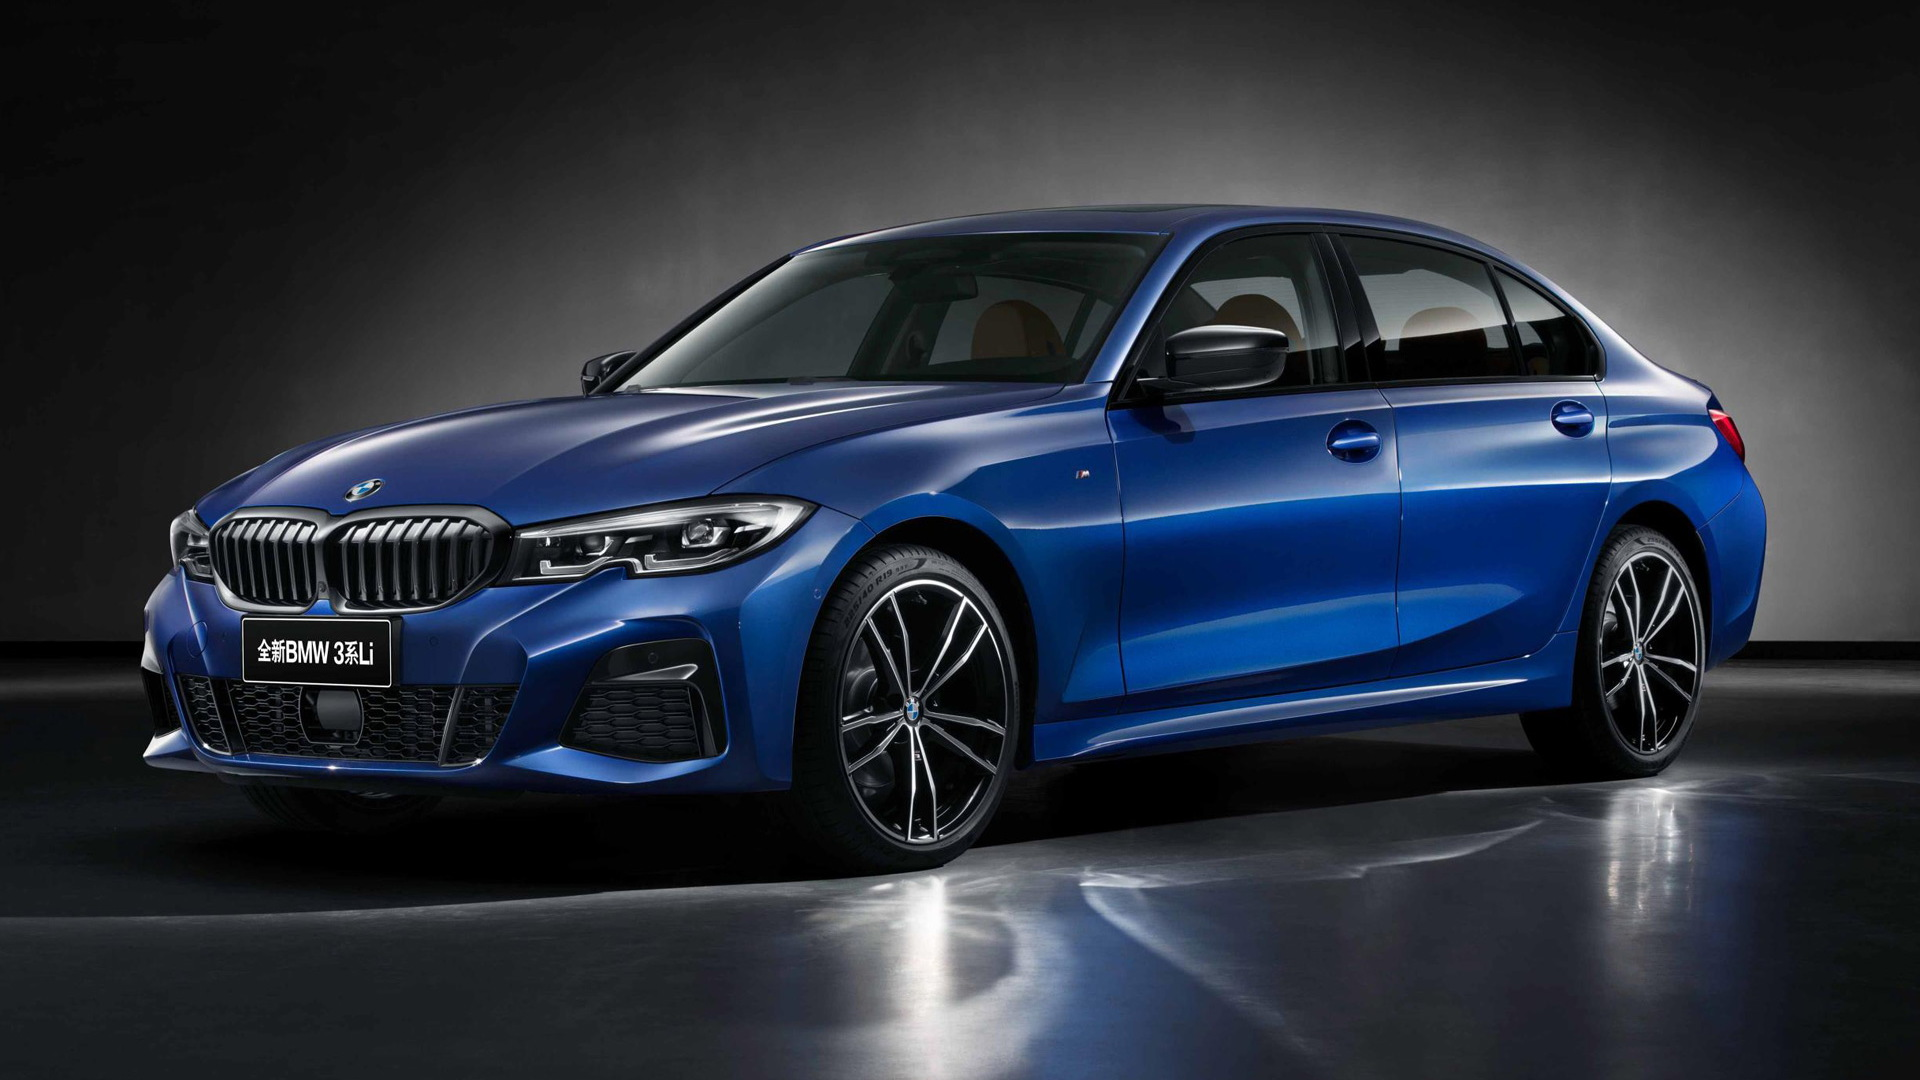 2019 BMW 3-Series Long Wheelbase